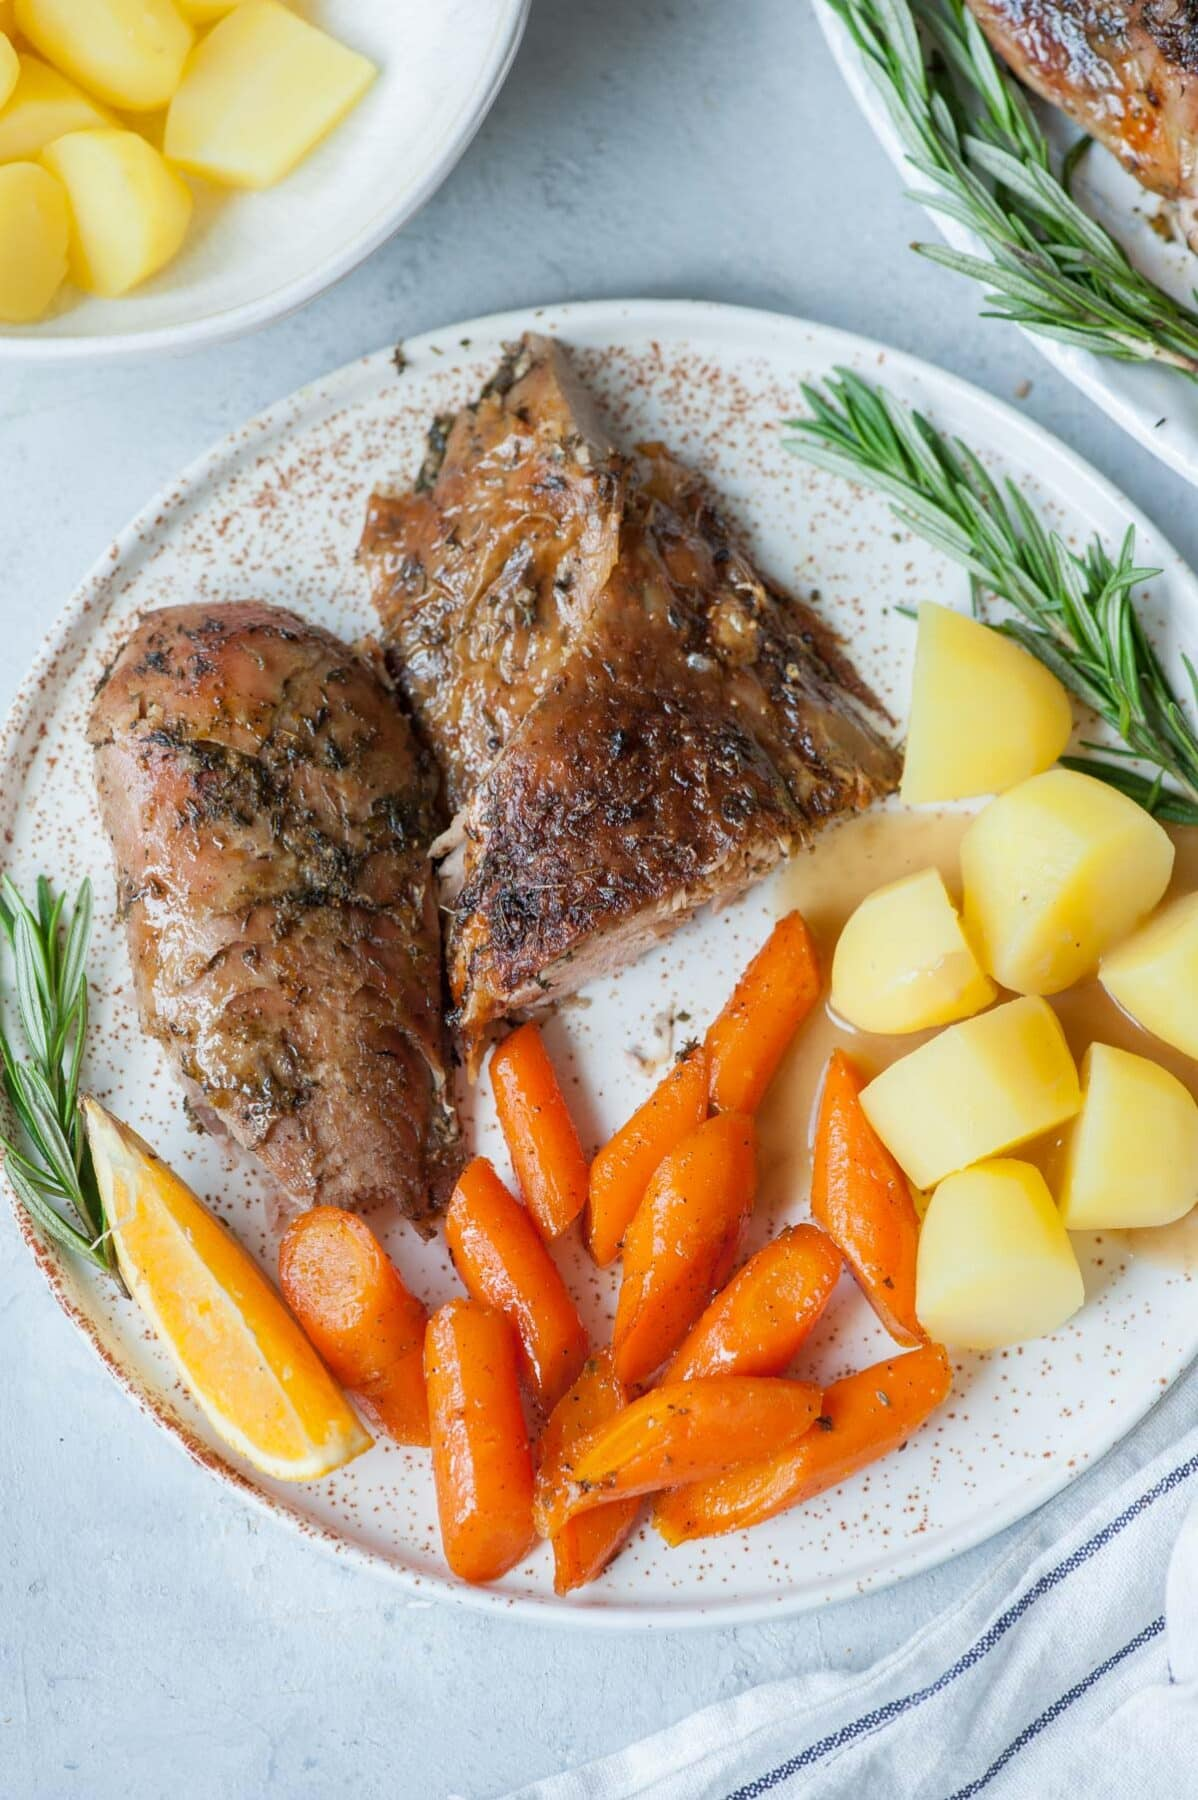 Roasted turkey leg on a white plate with glazed carrots, potatoes and gravy.